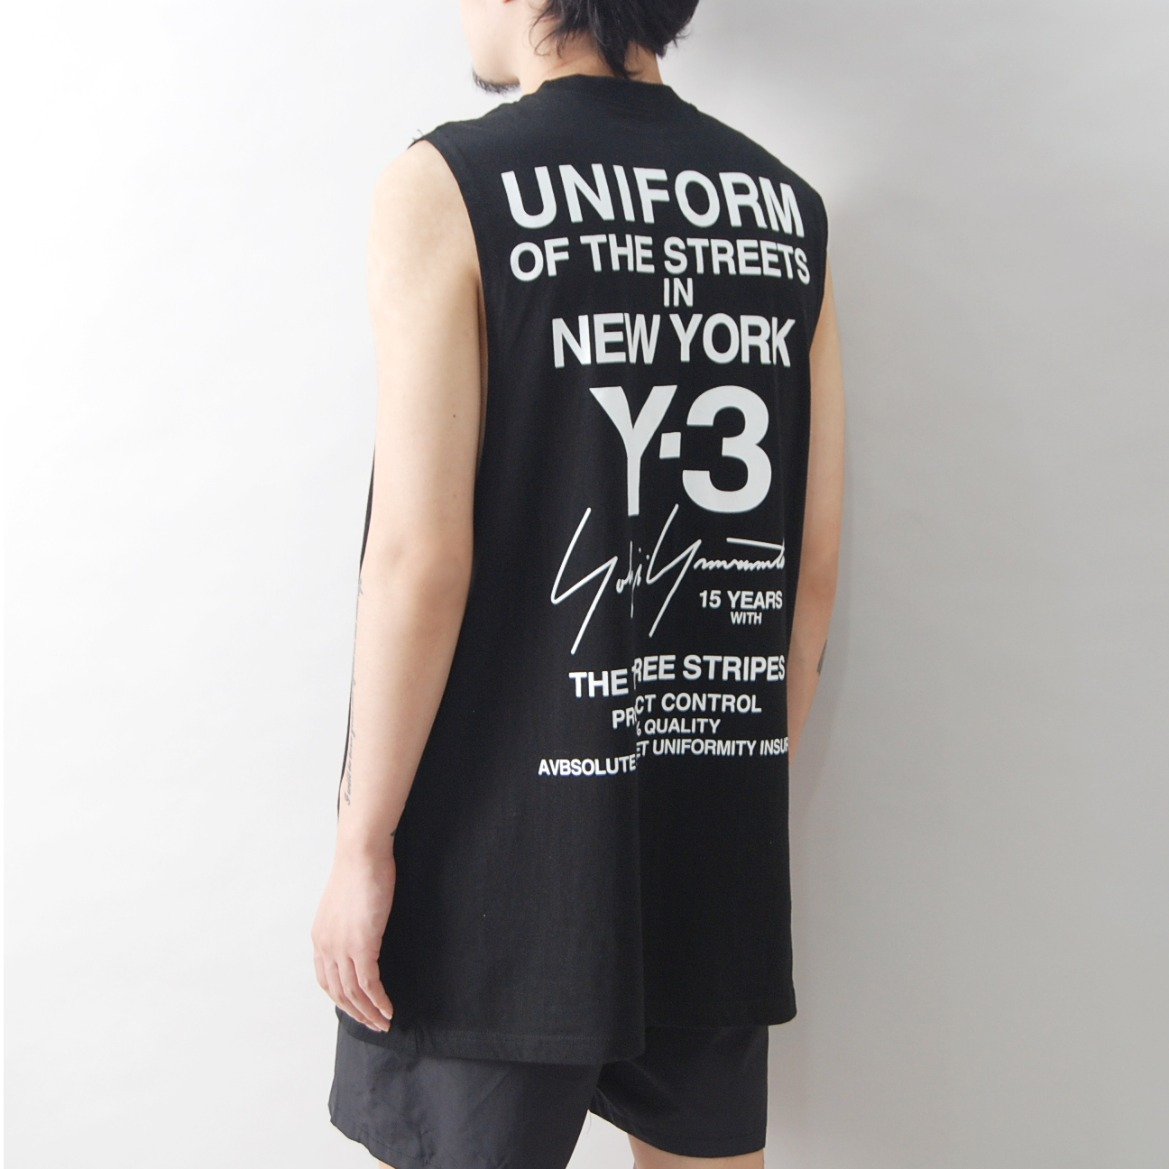 Y3 시티 백로고 나시 - Y3 WORLD TOUR SLEEVELESS (재입고 완료!!)